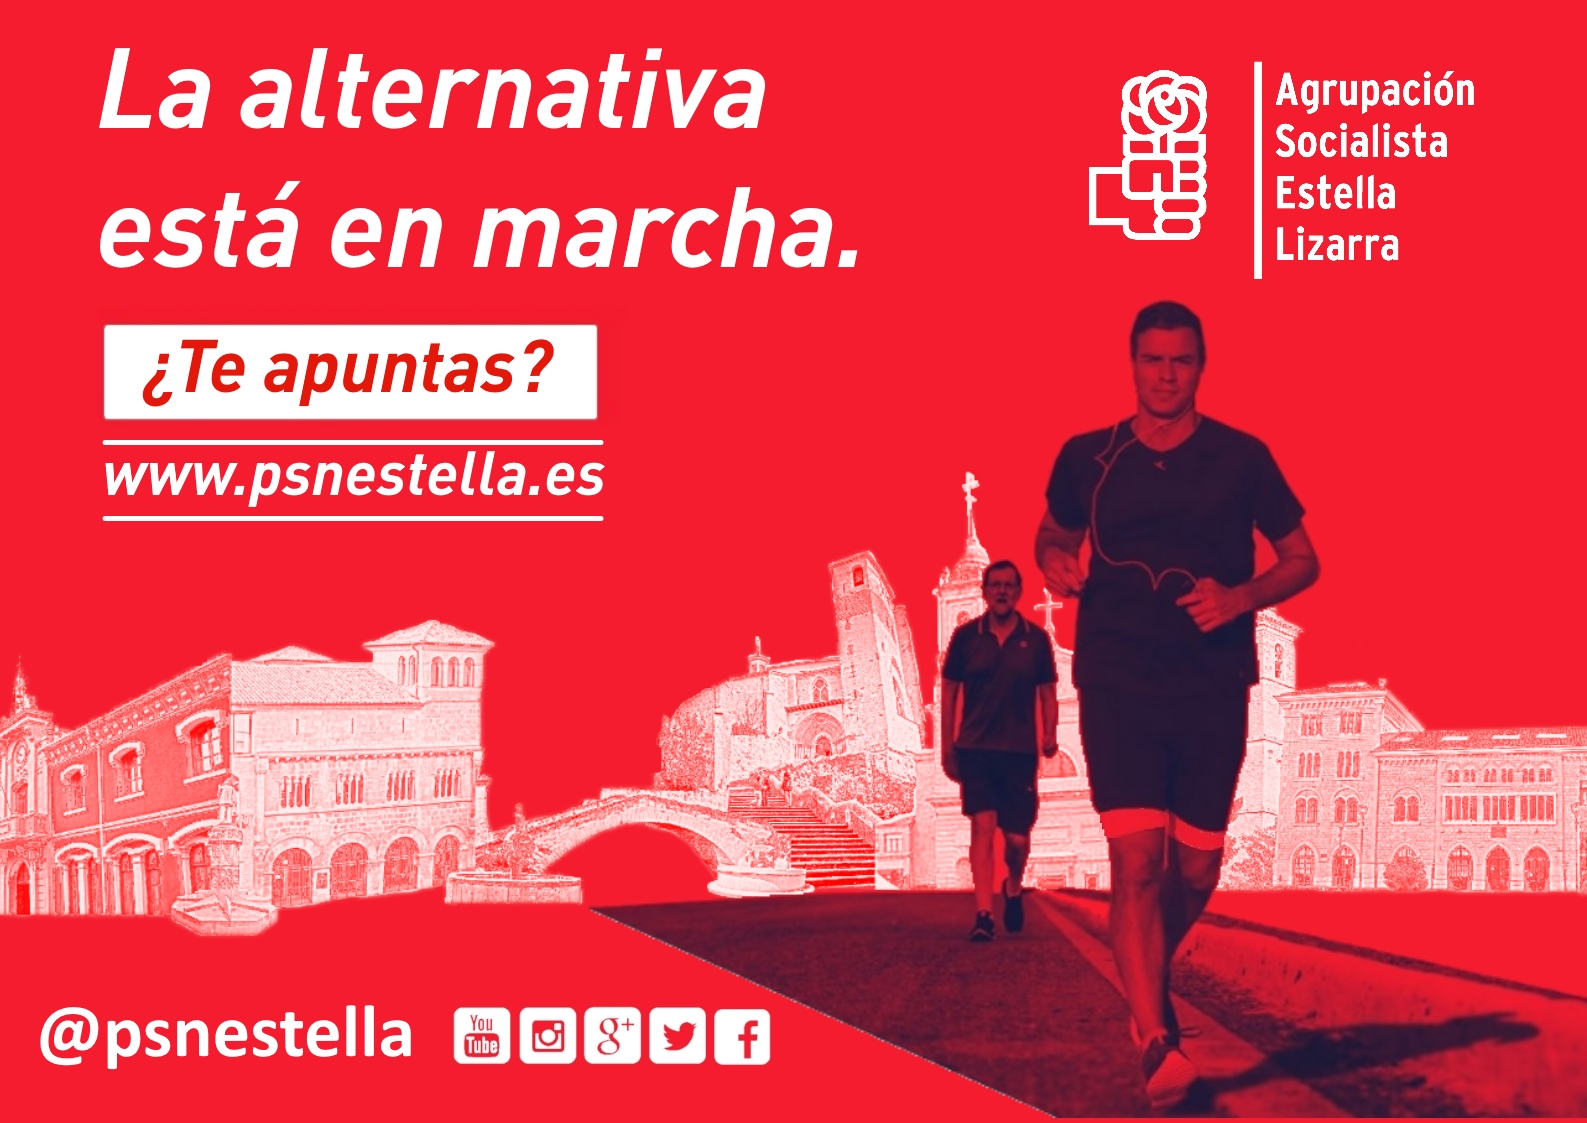 La alternativa está en marcha